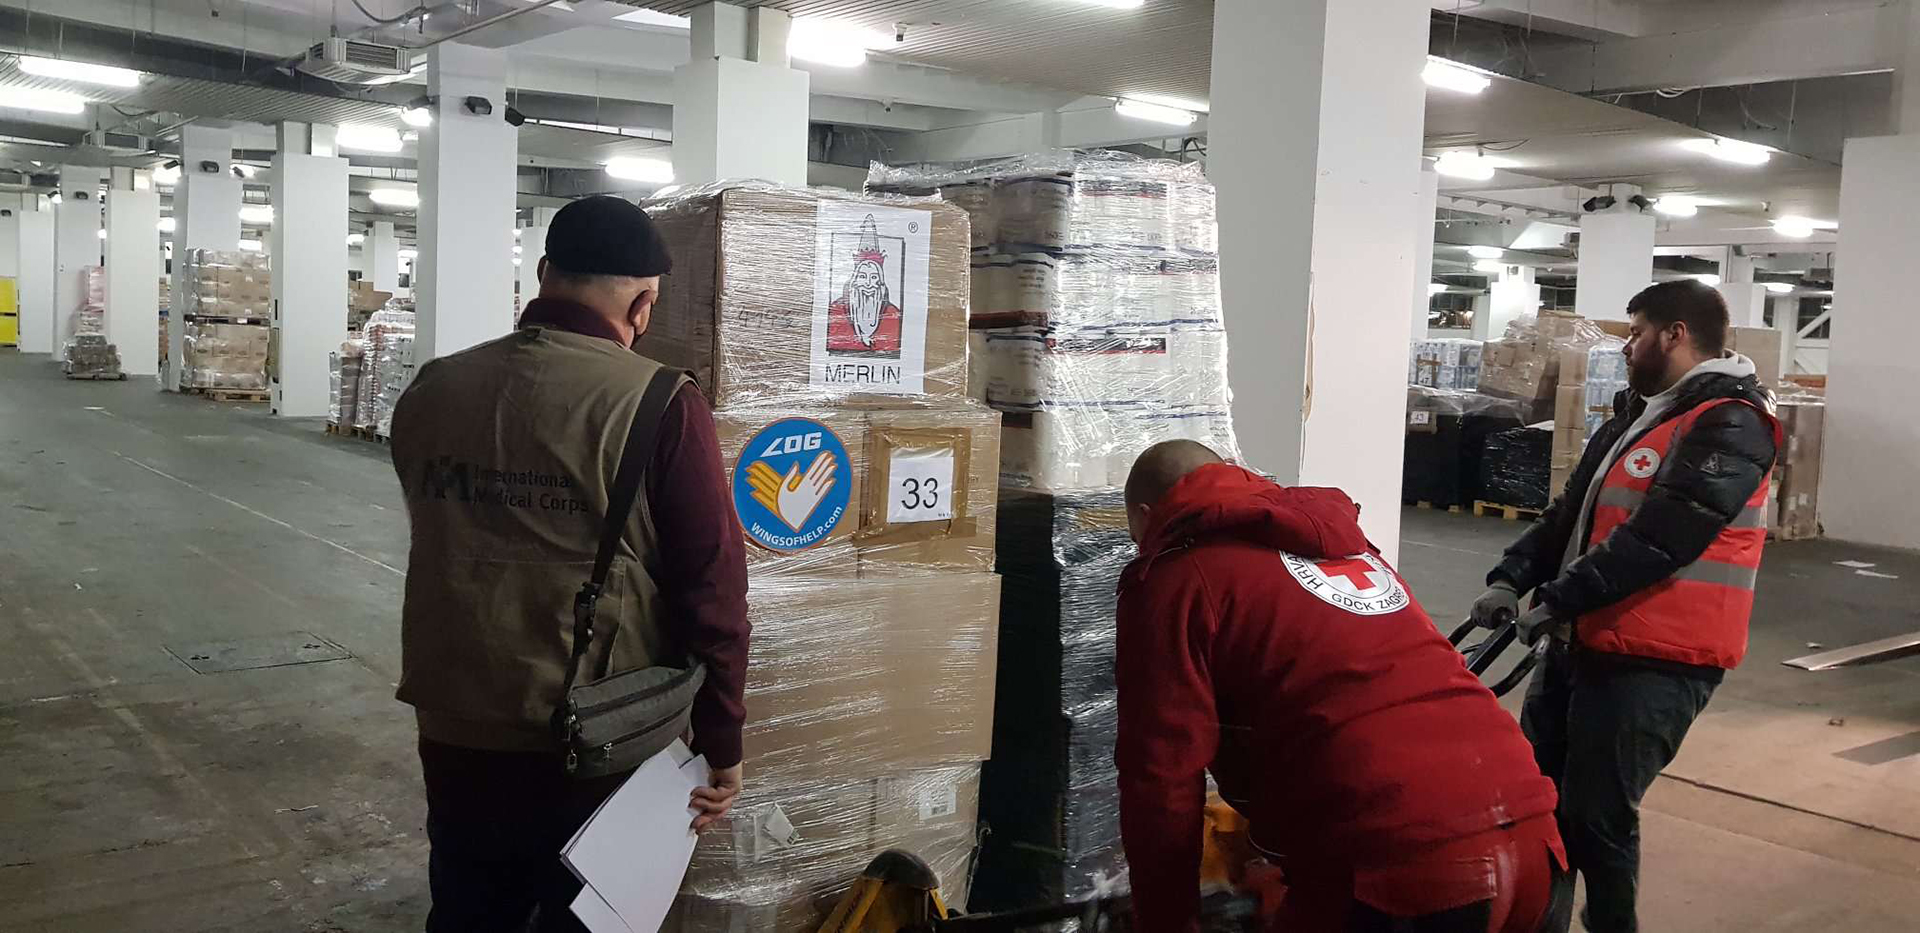 Donation provided by the Luftfahrt ohne Grenzen e.V. Wings of Help from Germany.